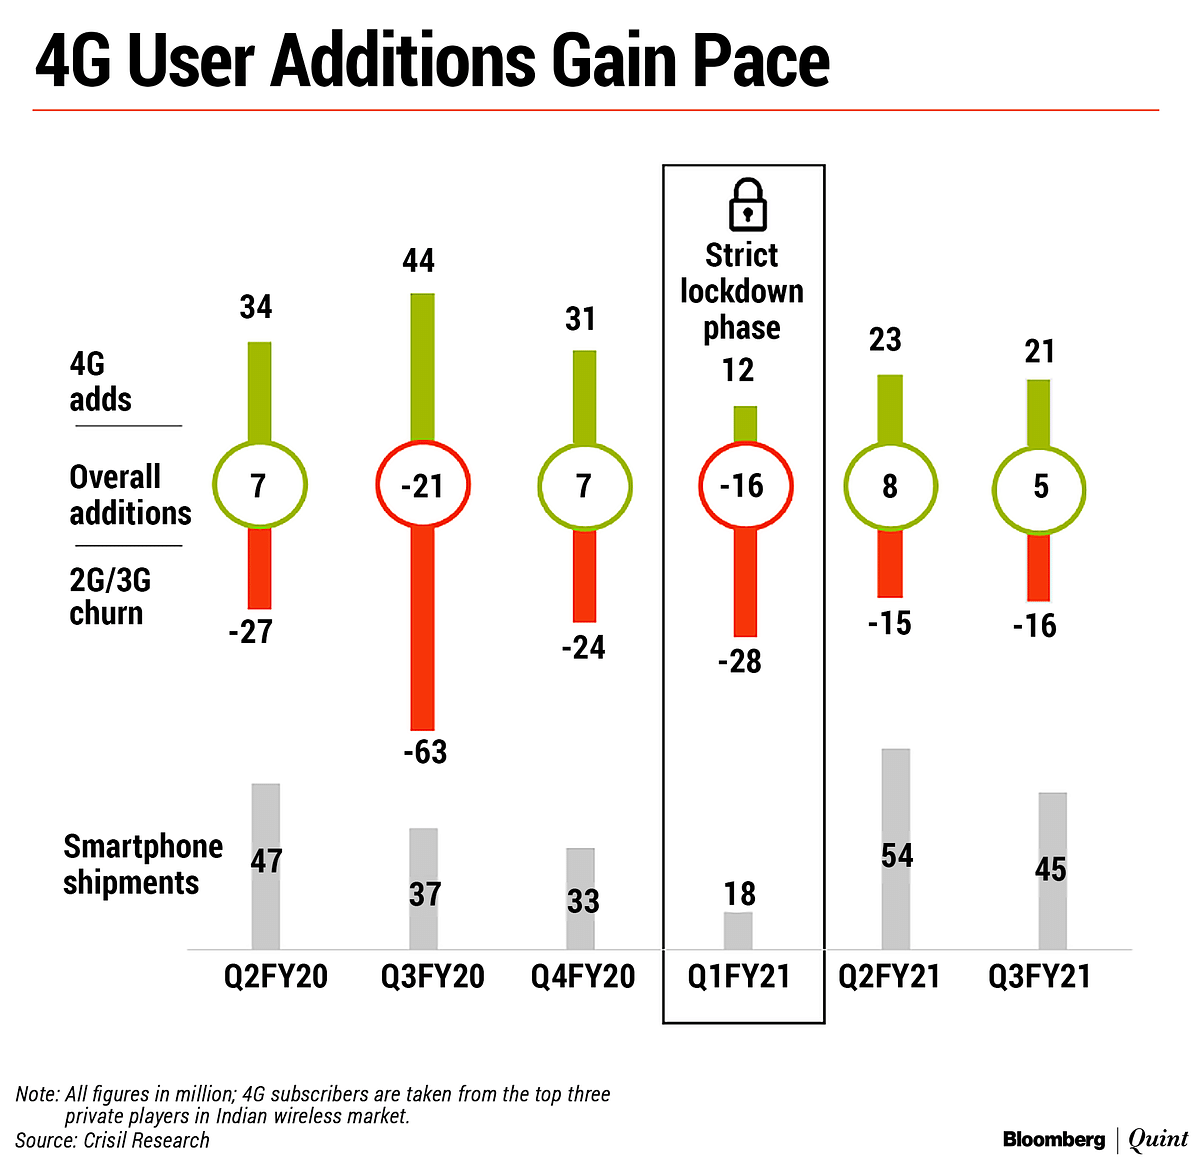 4G User Additions To Gain Pace In FY22 As Competition Intensifies: Crisil Research